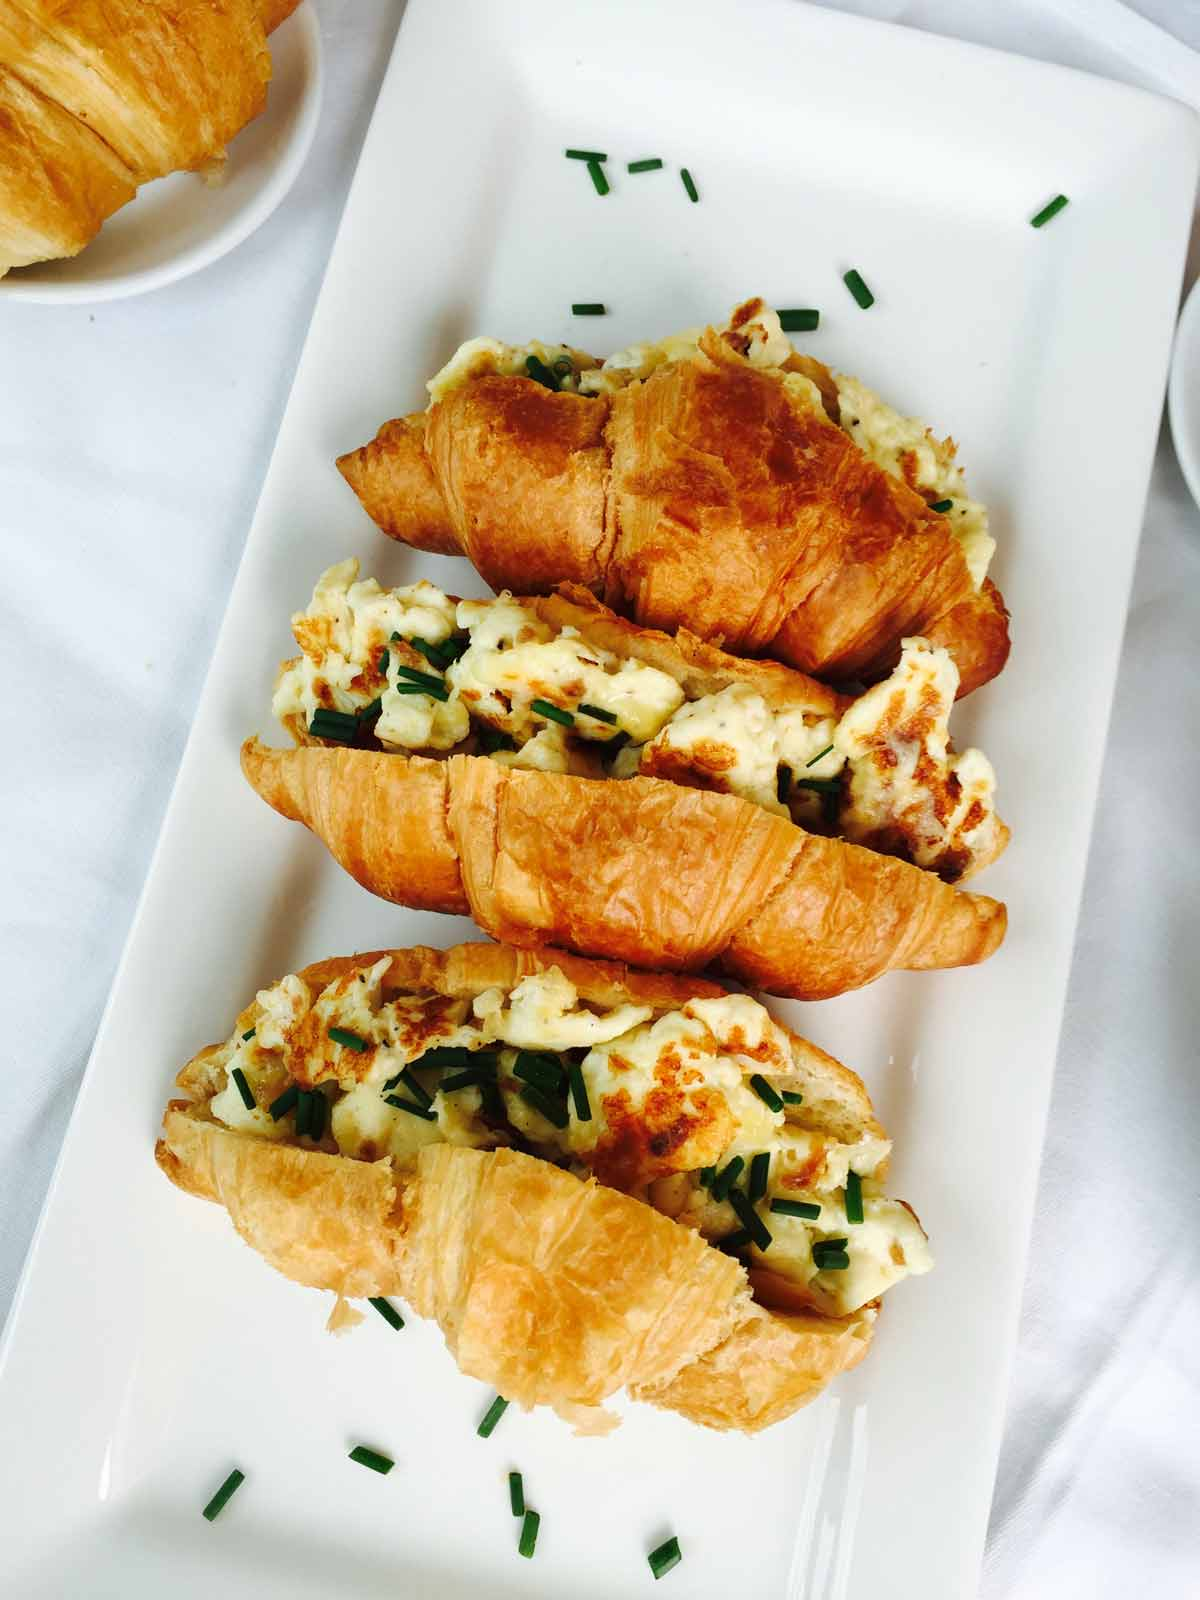 This morning croissant and scrambled eggs treat is a tasty and truly delightful way to start your day!